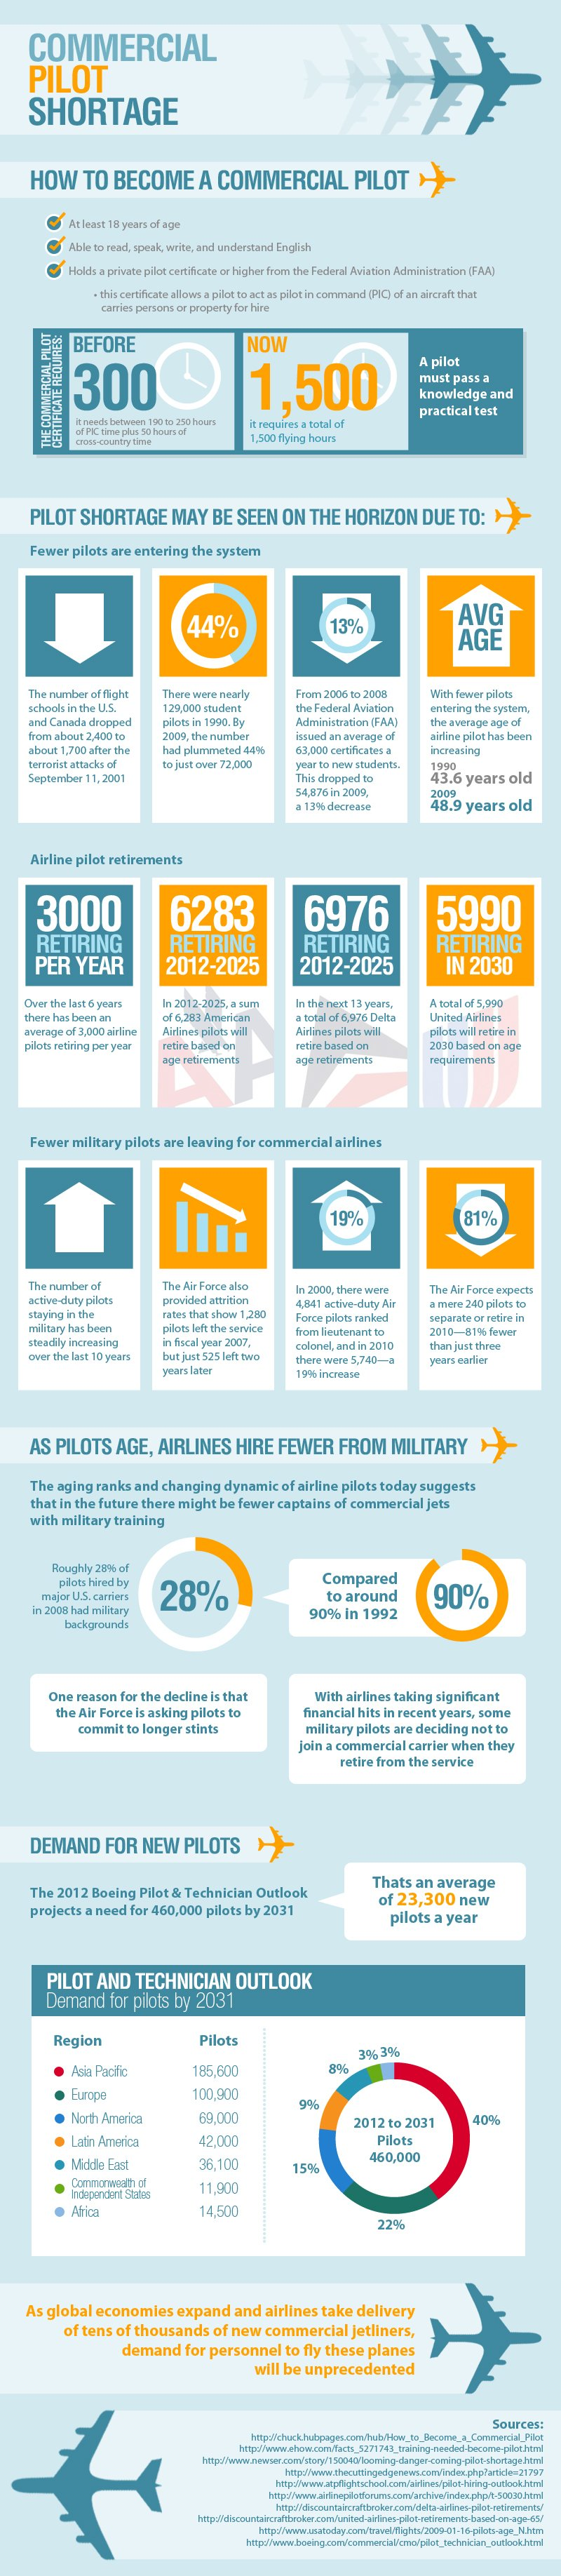 The Commercial Pilot Shortage Infographic Infographic